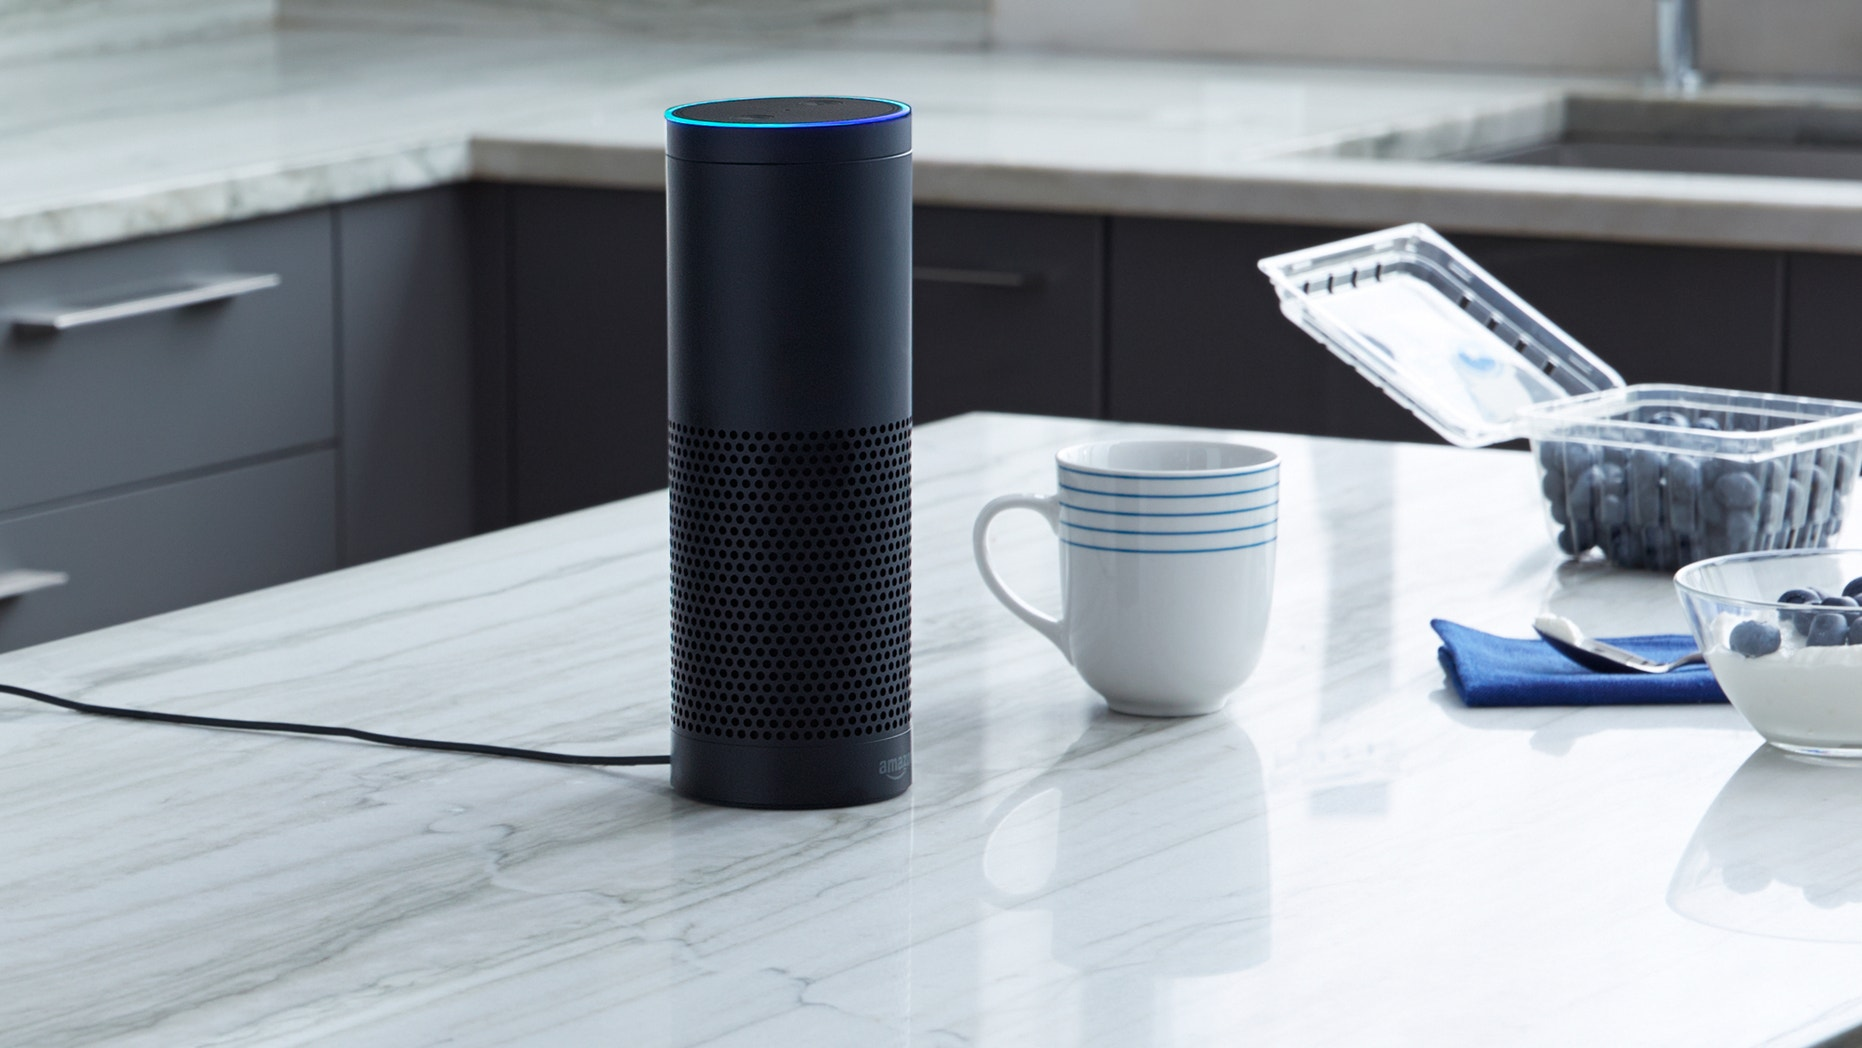 Amazon Echo file photo (Amazon).